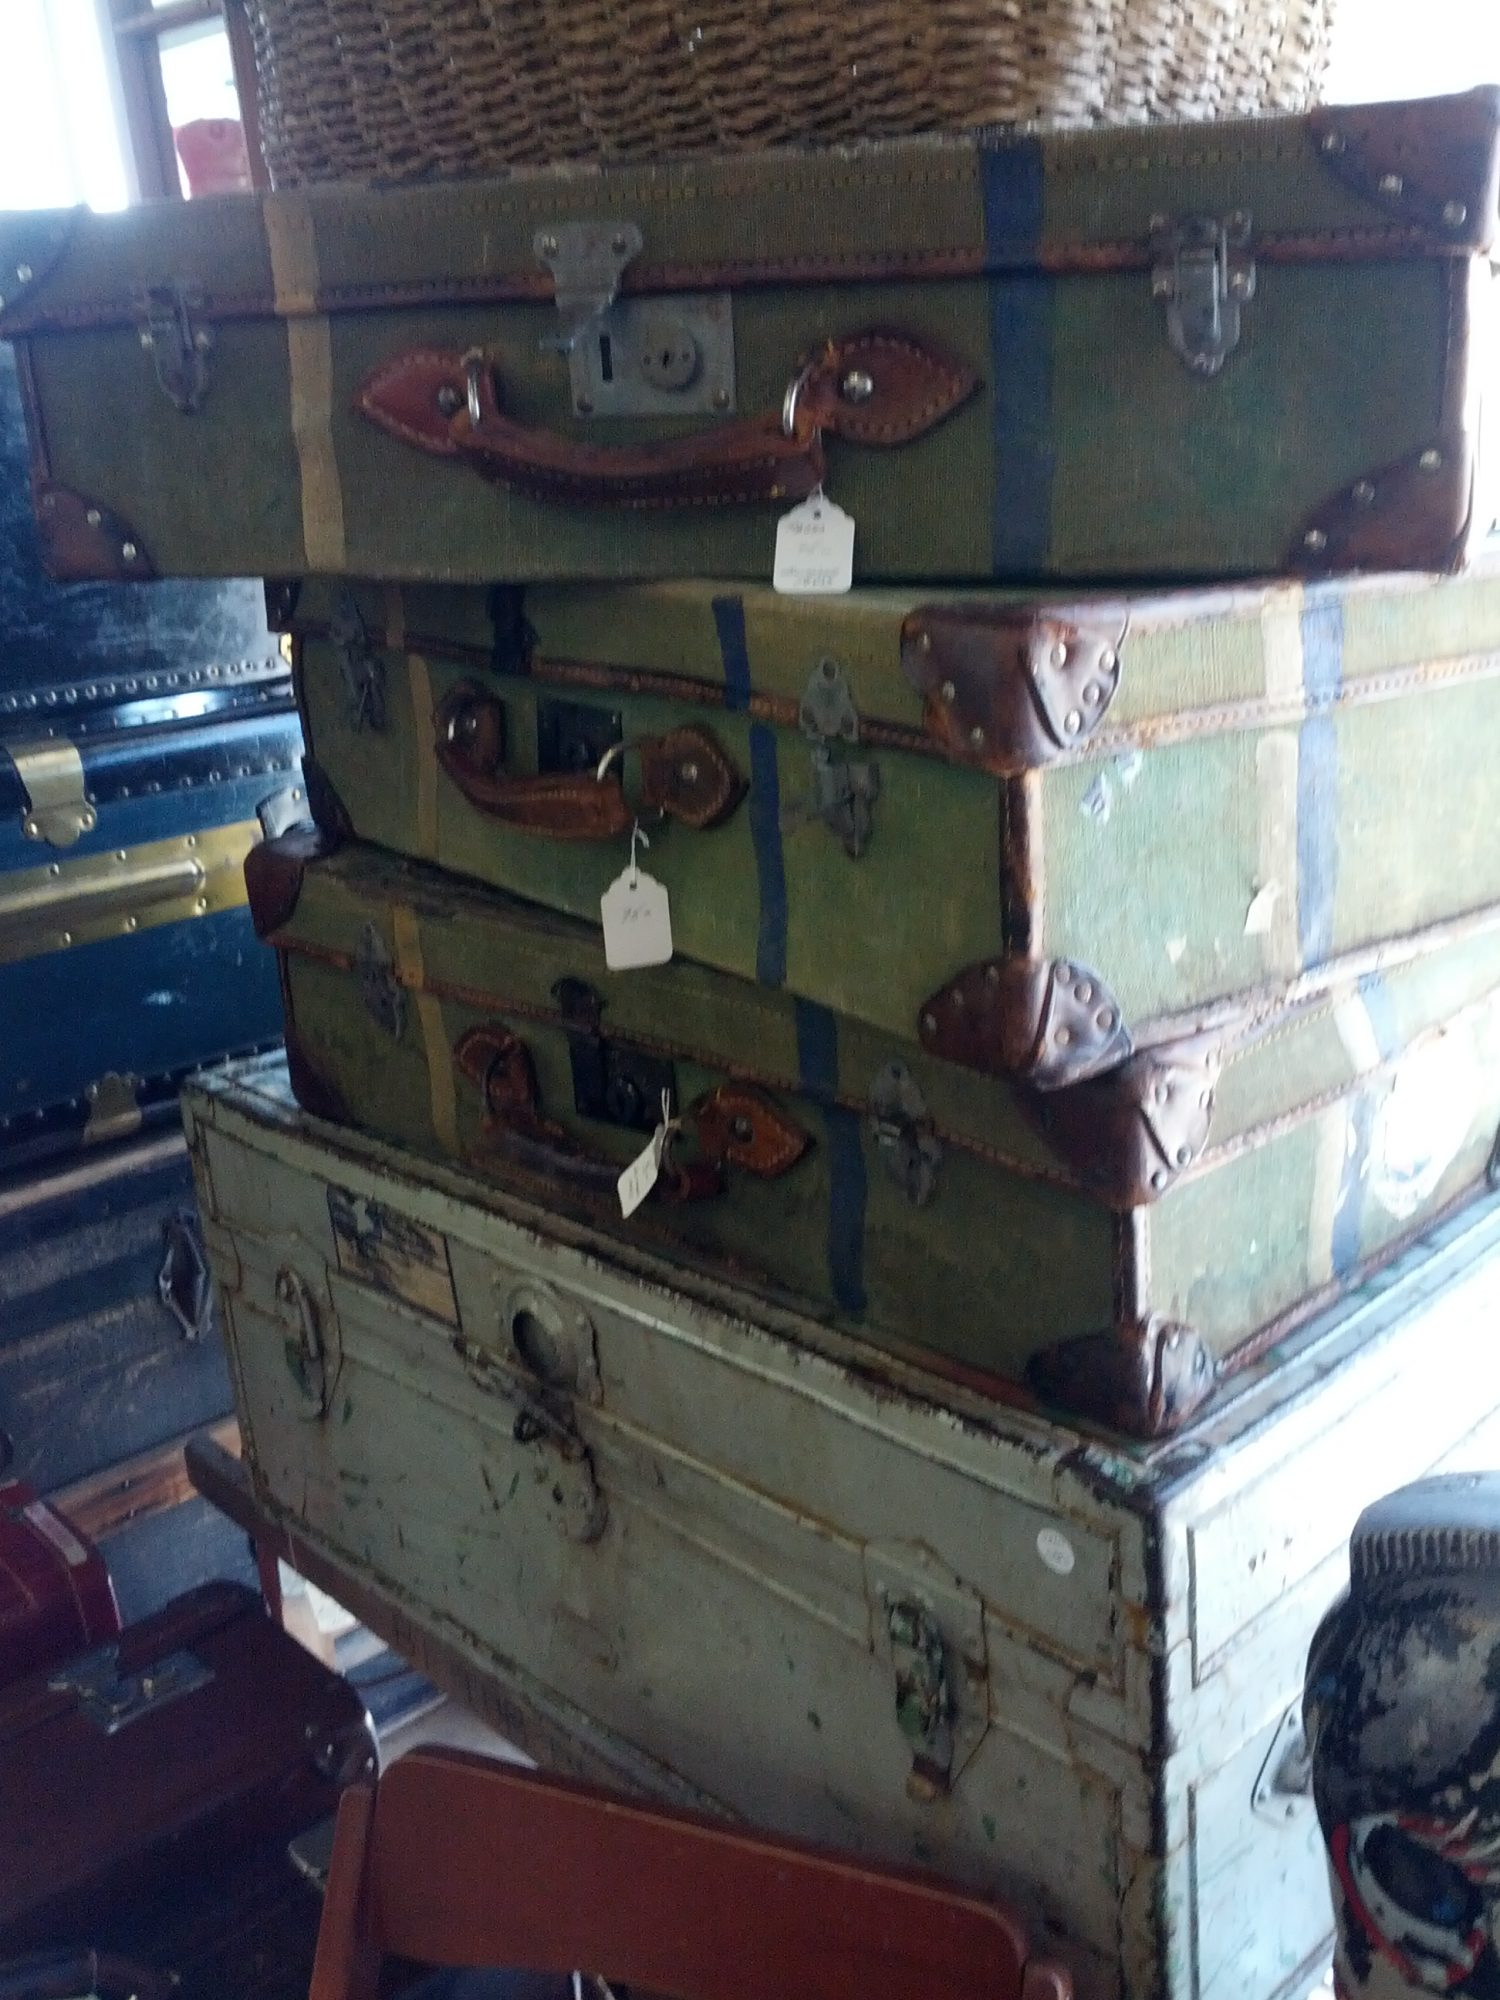 1940s suitcases at an antique store. Photo credit: Joanna Farley.